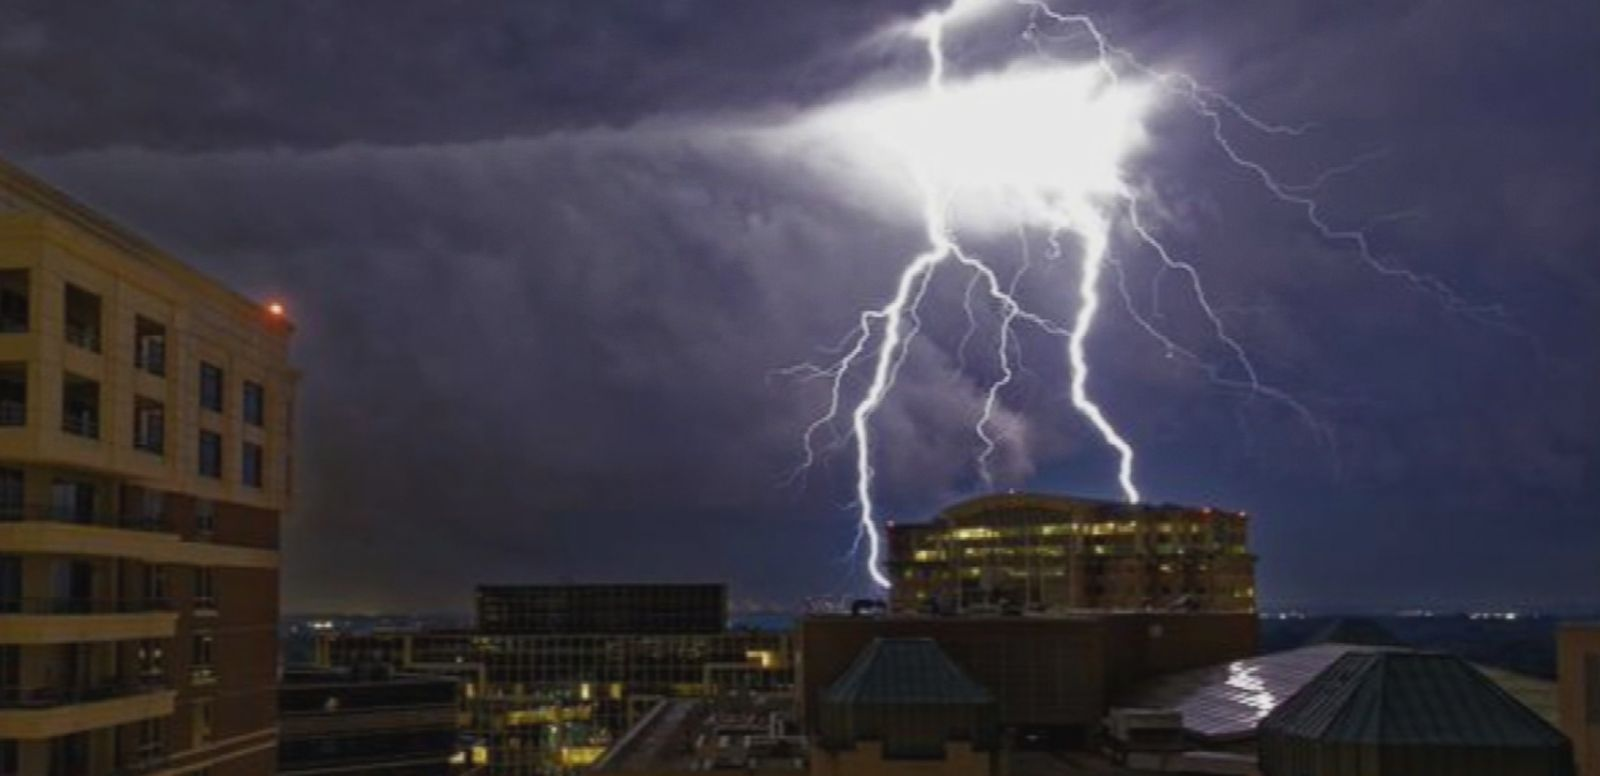 VIDEO: Thunderstorms Strike in Several States